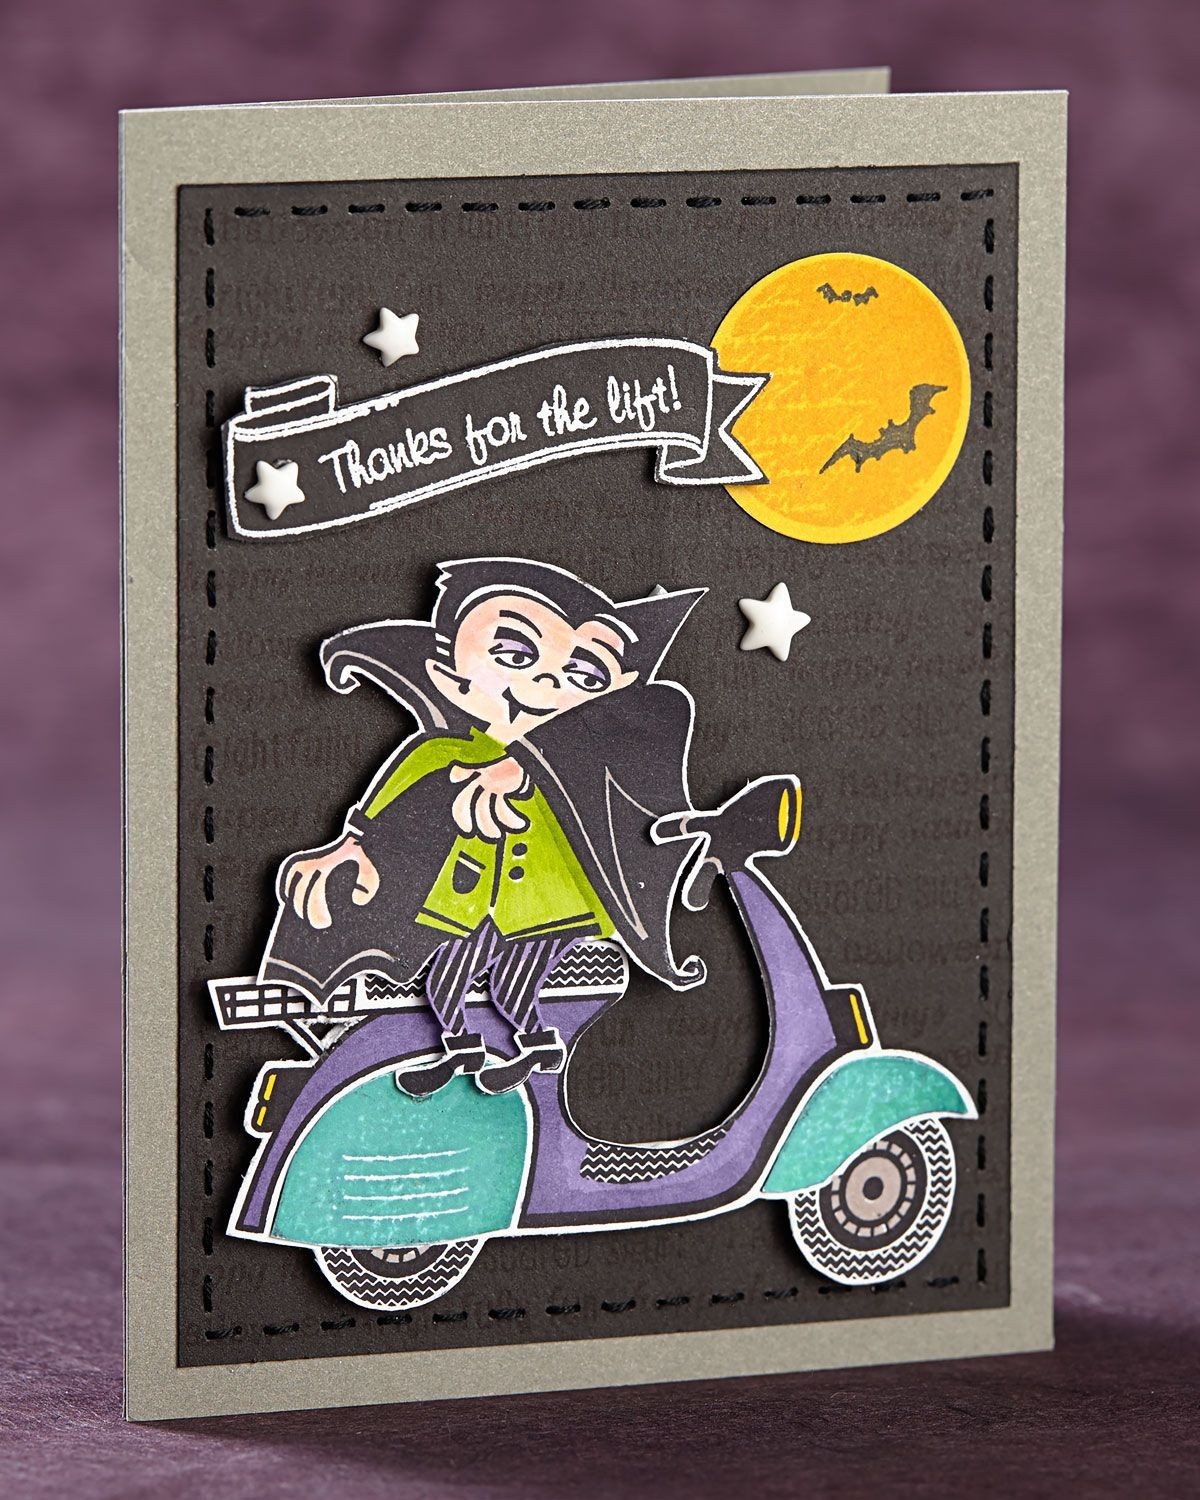 dracula birthday card ; dracula-birthday-card-inspirational-look-at-dracula-cruising-through-the-night-aboard-the-scooter-from-of-dracula-birthday-card